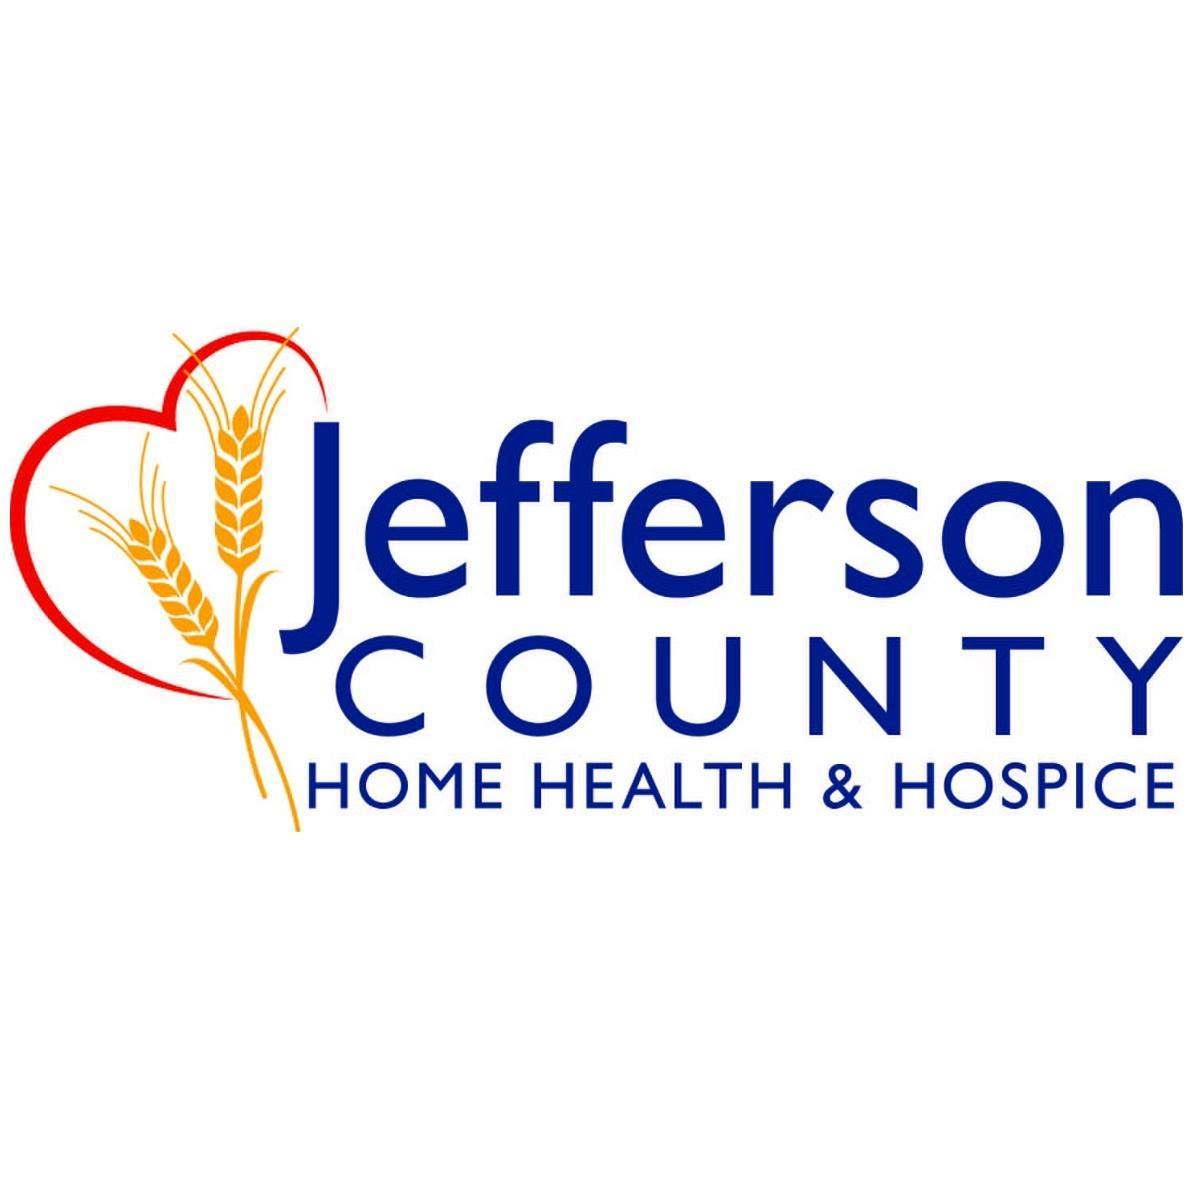 JeffersonCoSquareLogo